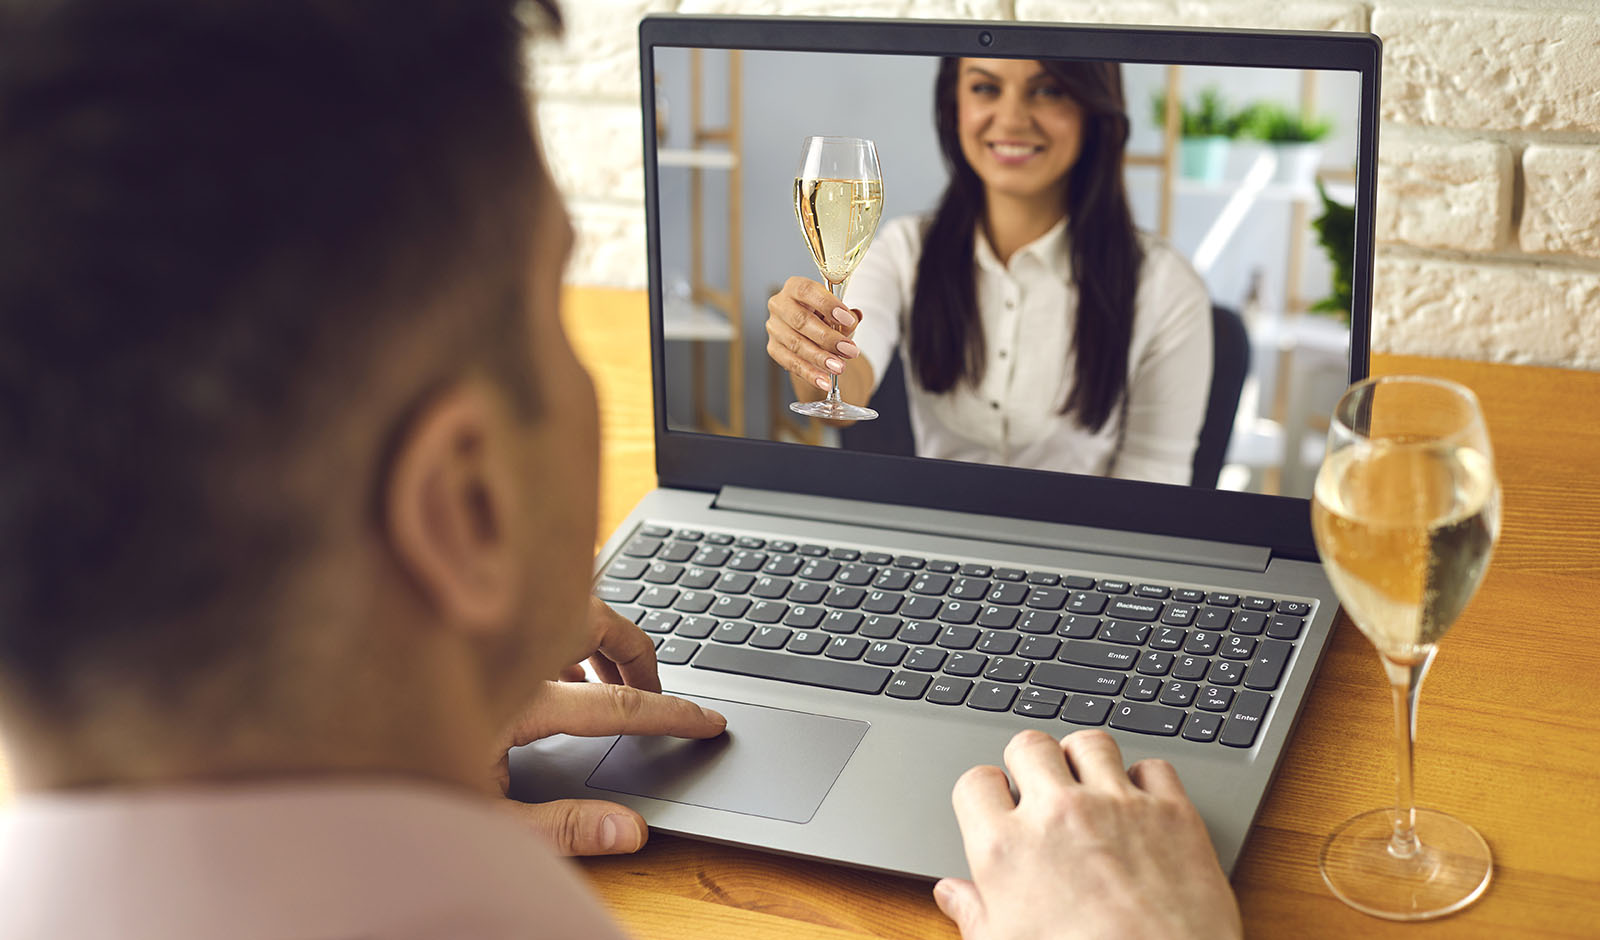 Date online. Loving couple with glasses of wine on a date distance using a video call laptop in a romantic setting at home.